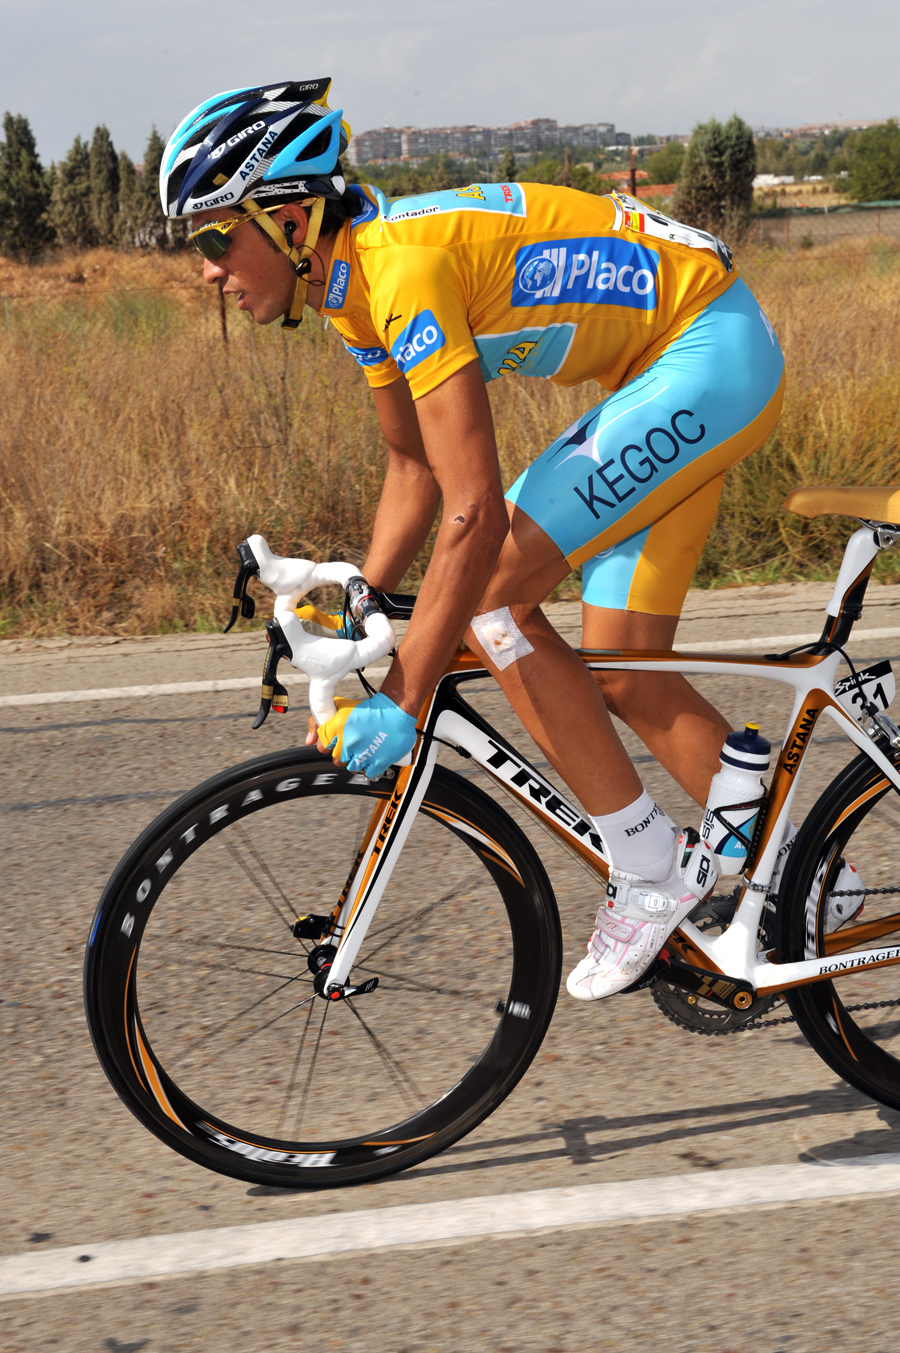 Tour of Spain - Vuelta a Espana 2008